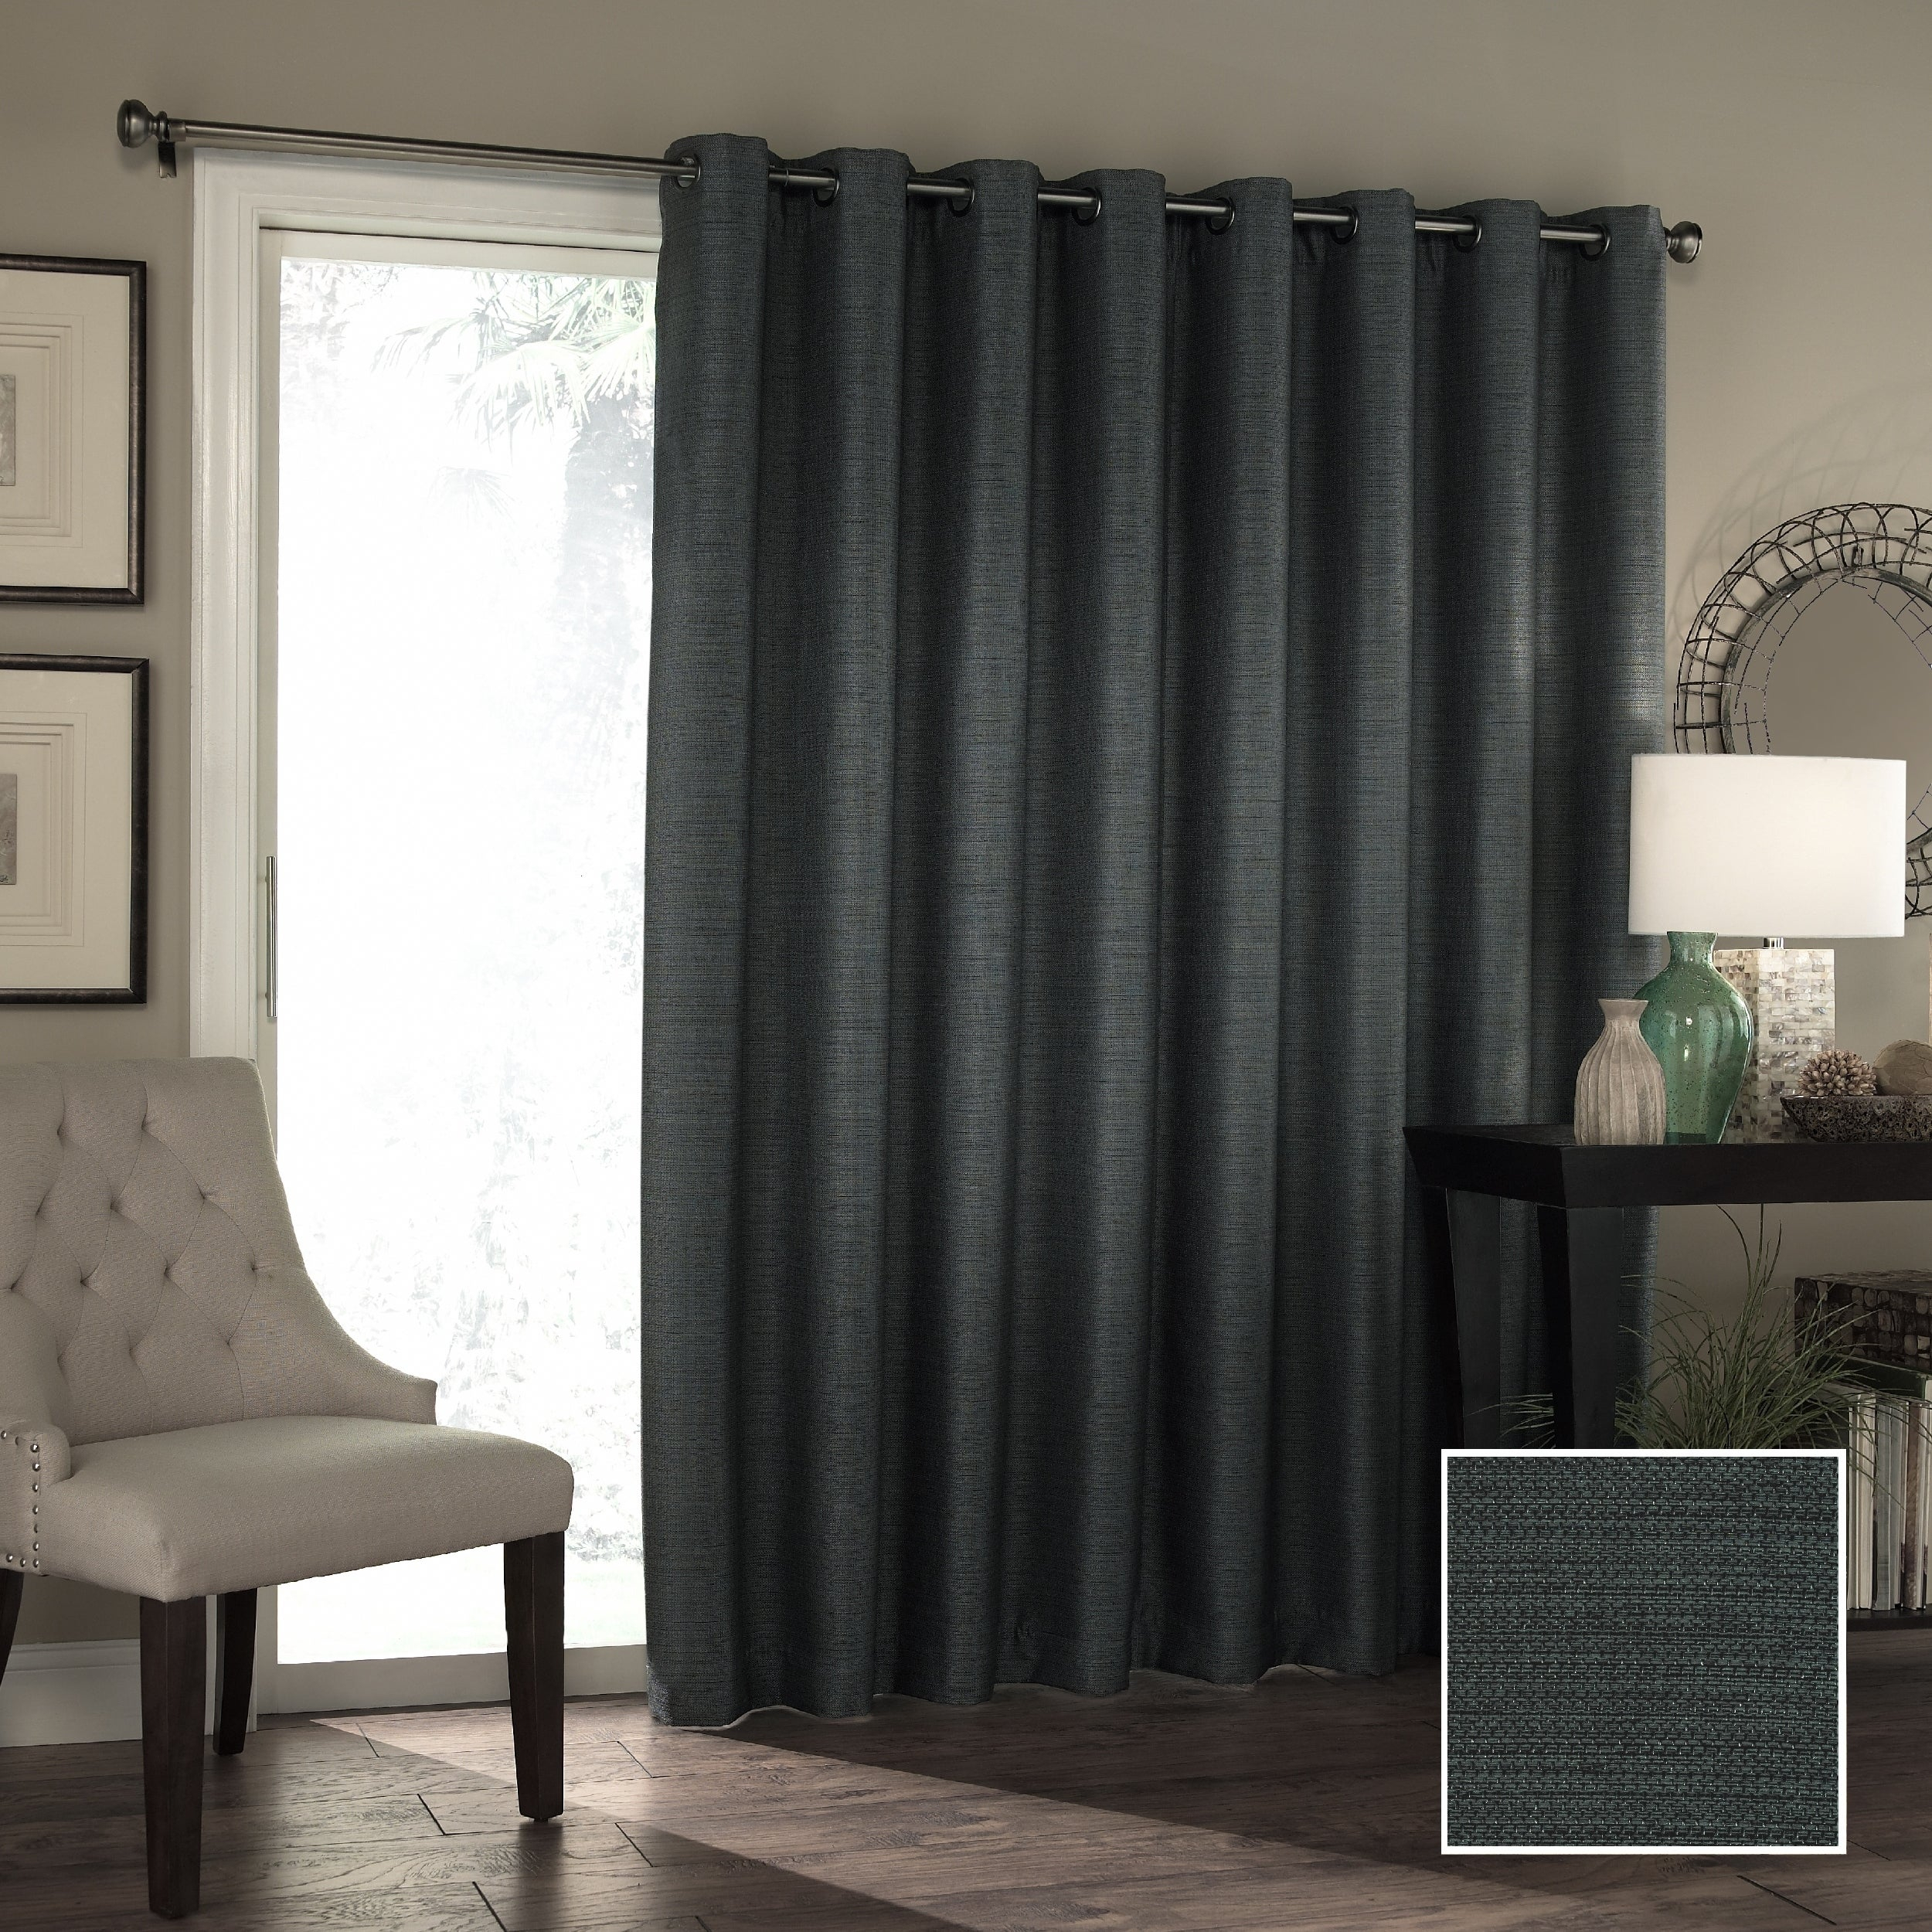 Curtain ~ No Emily Sheer Voile Single Solid Colored Patio In Emily Sheer Voile Solid Single Patio Door Curtain Panels (View 18 of 20)